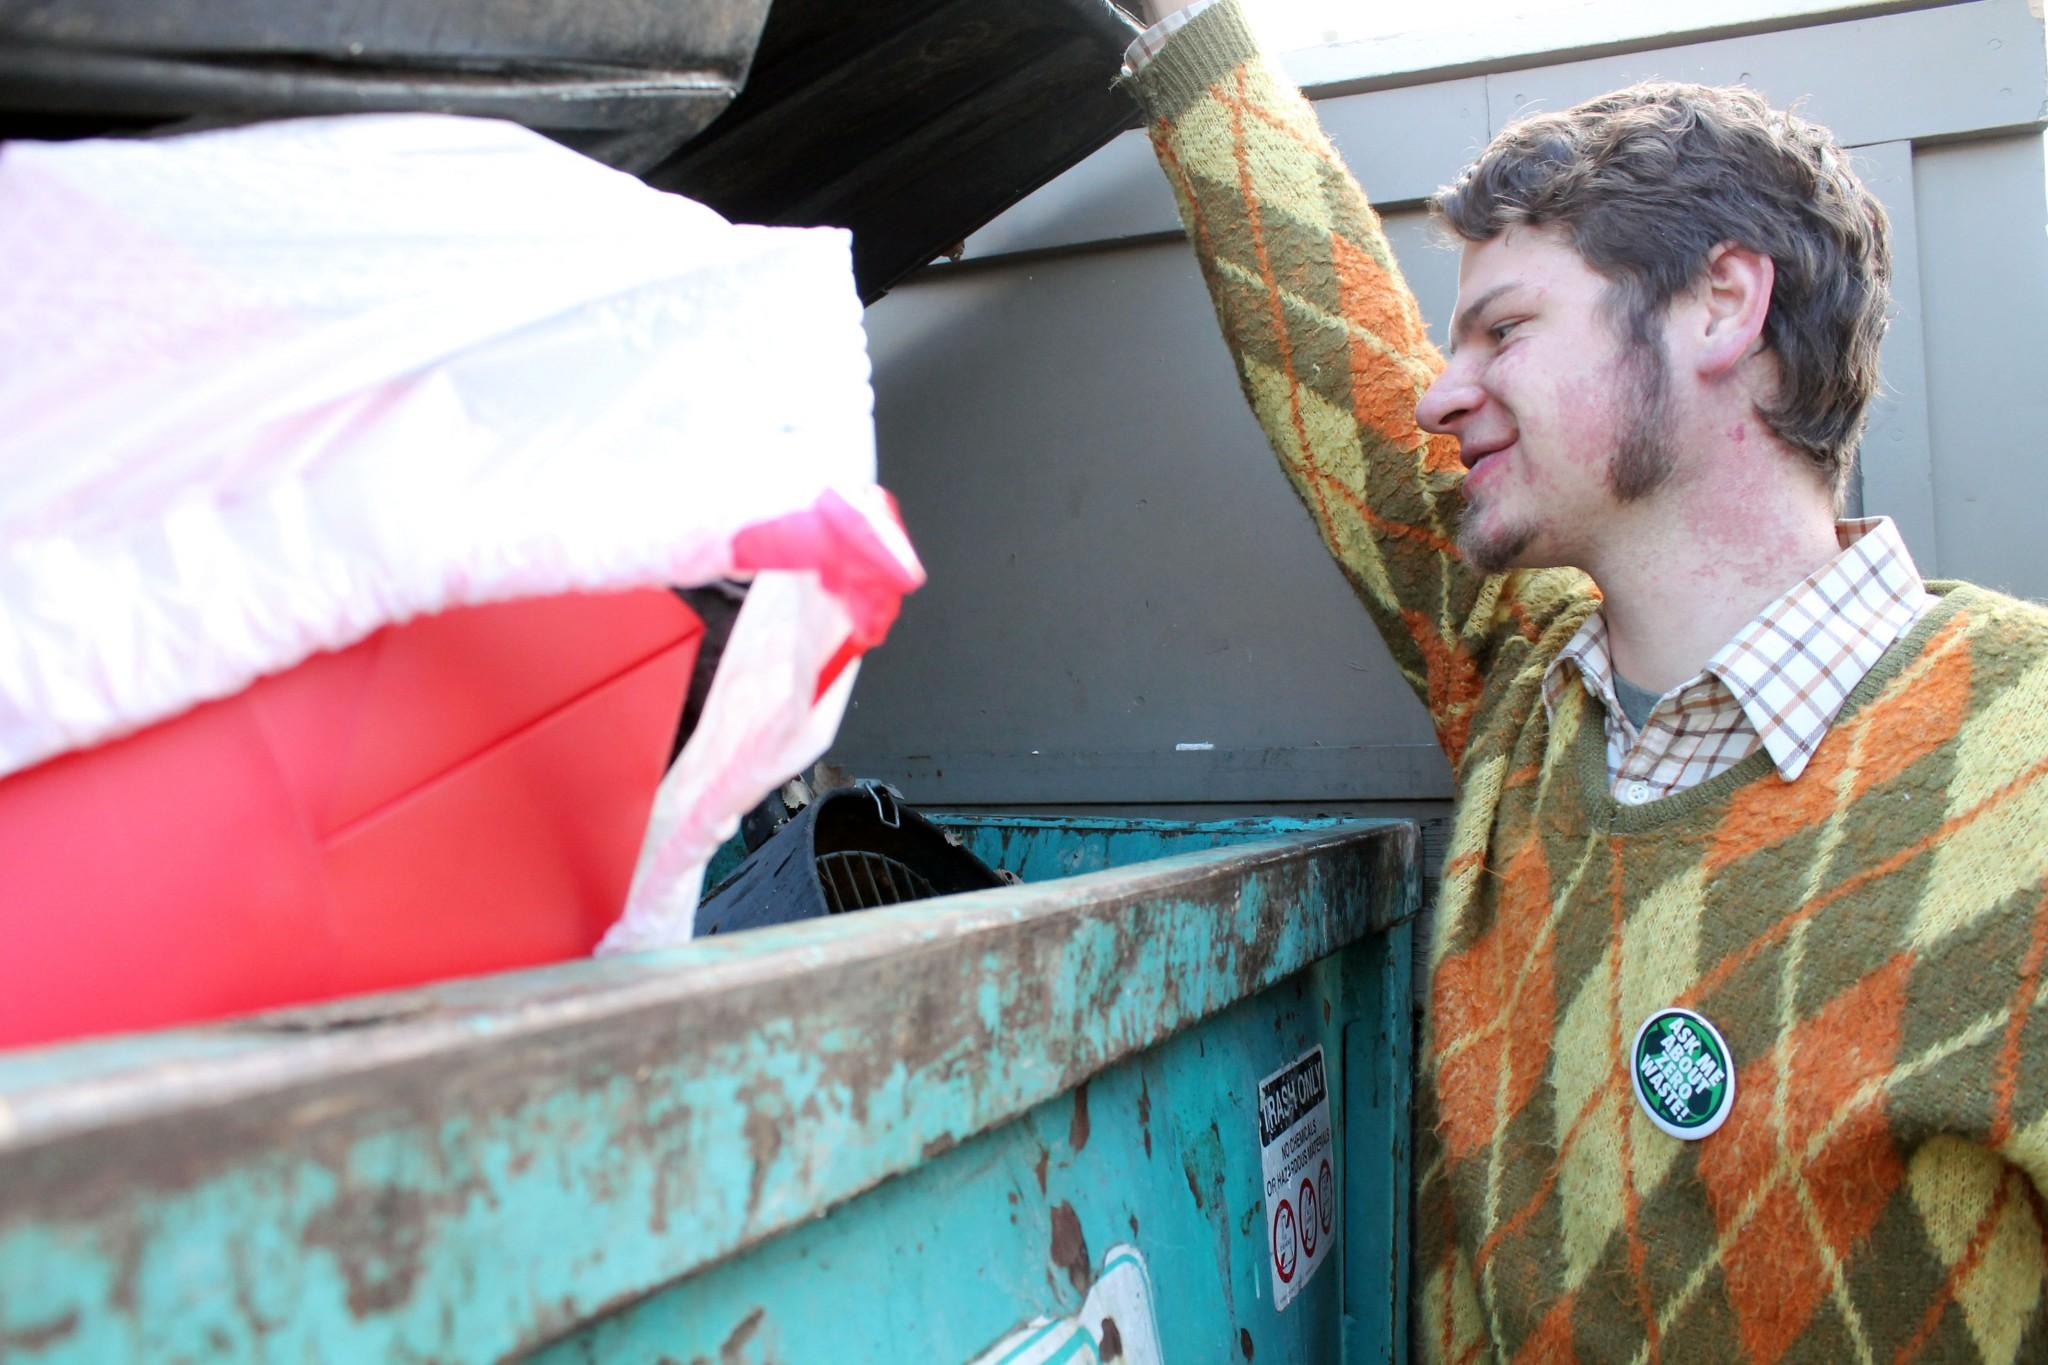 John Rooss, a soil and crop science major and organic agriculture minor, spots what will soon be his new fire pit in his neighborhood dumpster.  According to Rooss, in addition to using his findings for personal projects he also recycles and composts items that he finds.